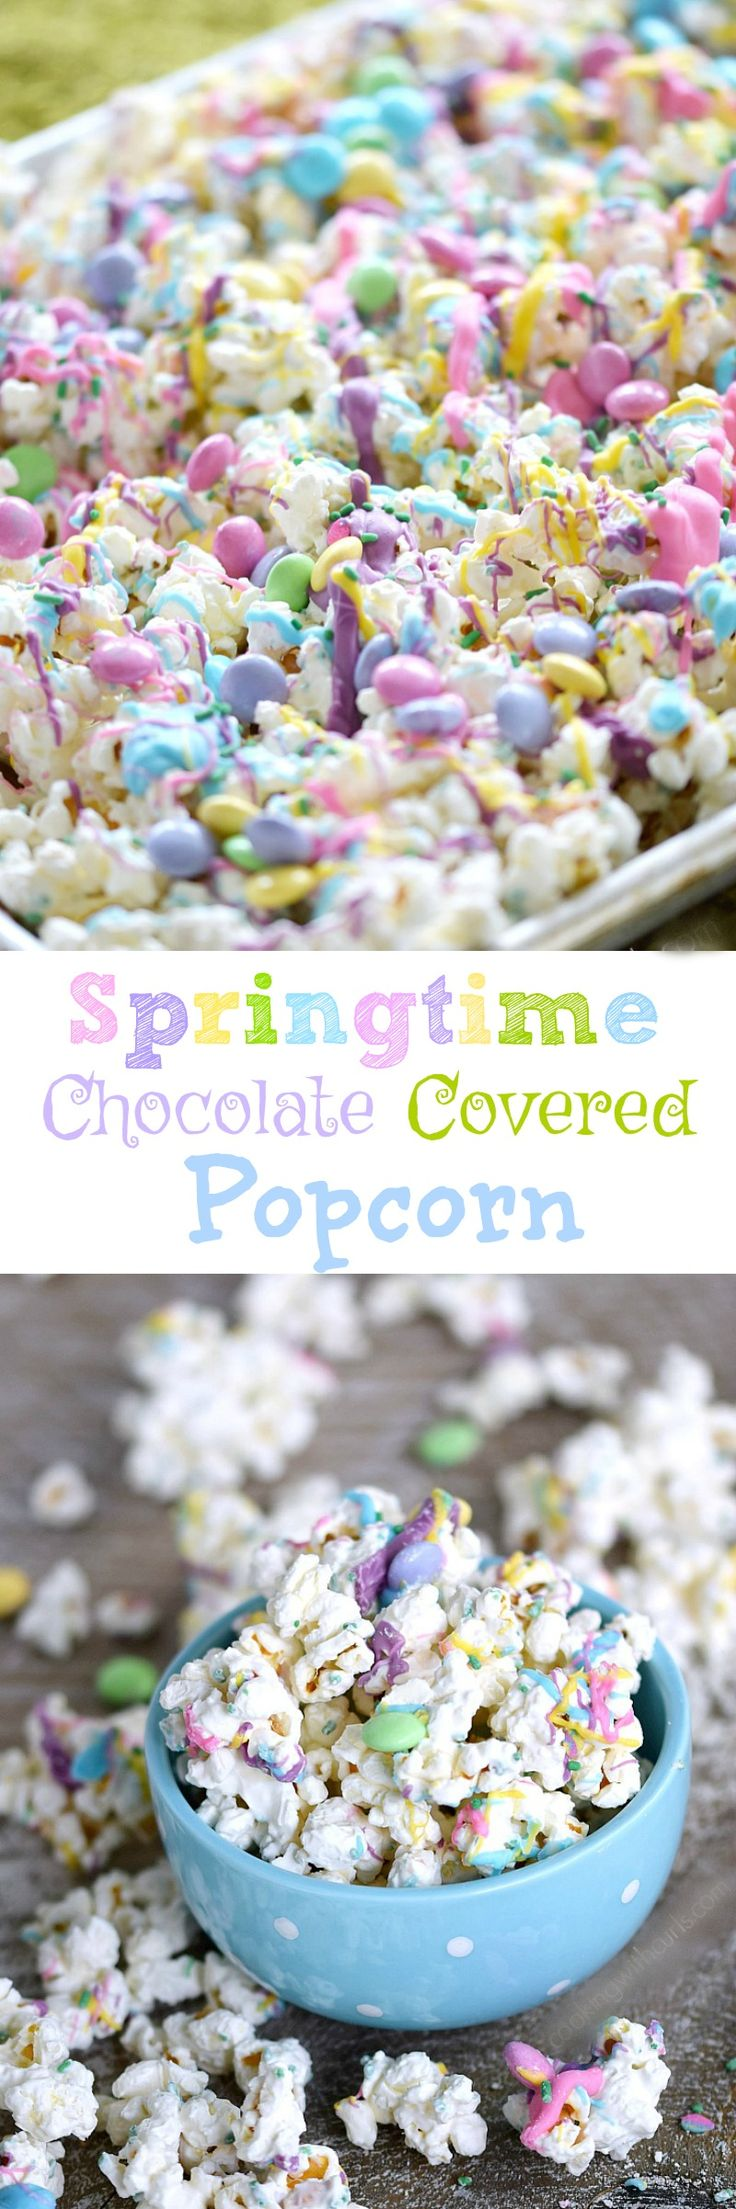 This Springtime Chocolate Covered Popcorn is sweet and delicious covered in pastel colored chocolates, sprinkles, and candies | cookingwithcurls.com